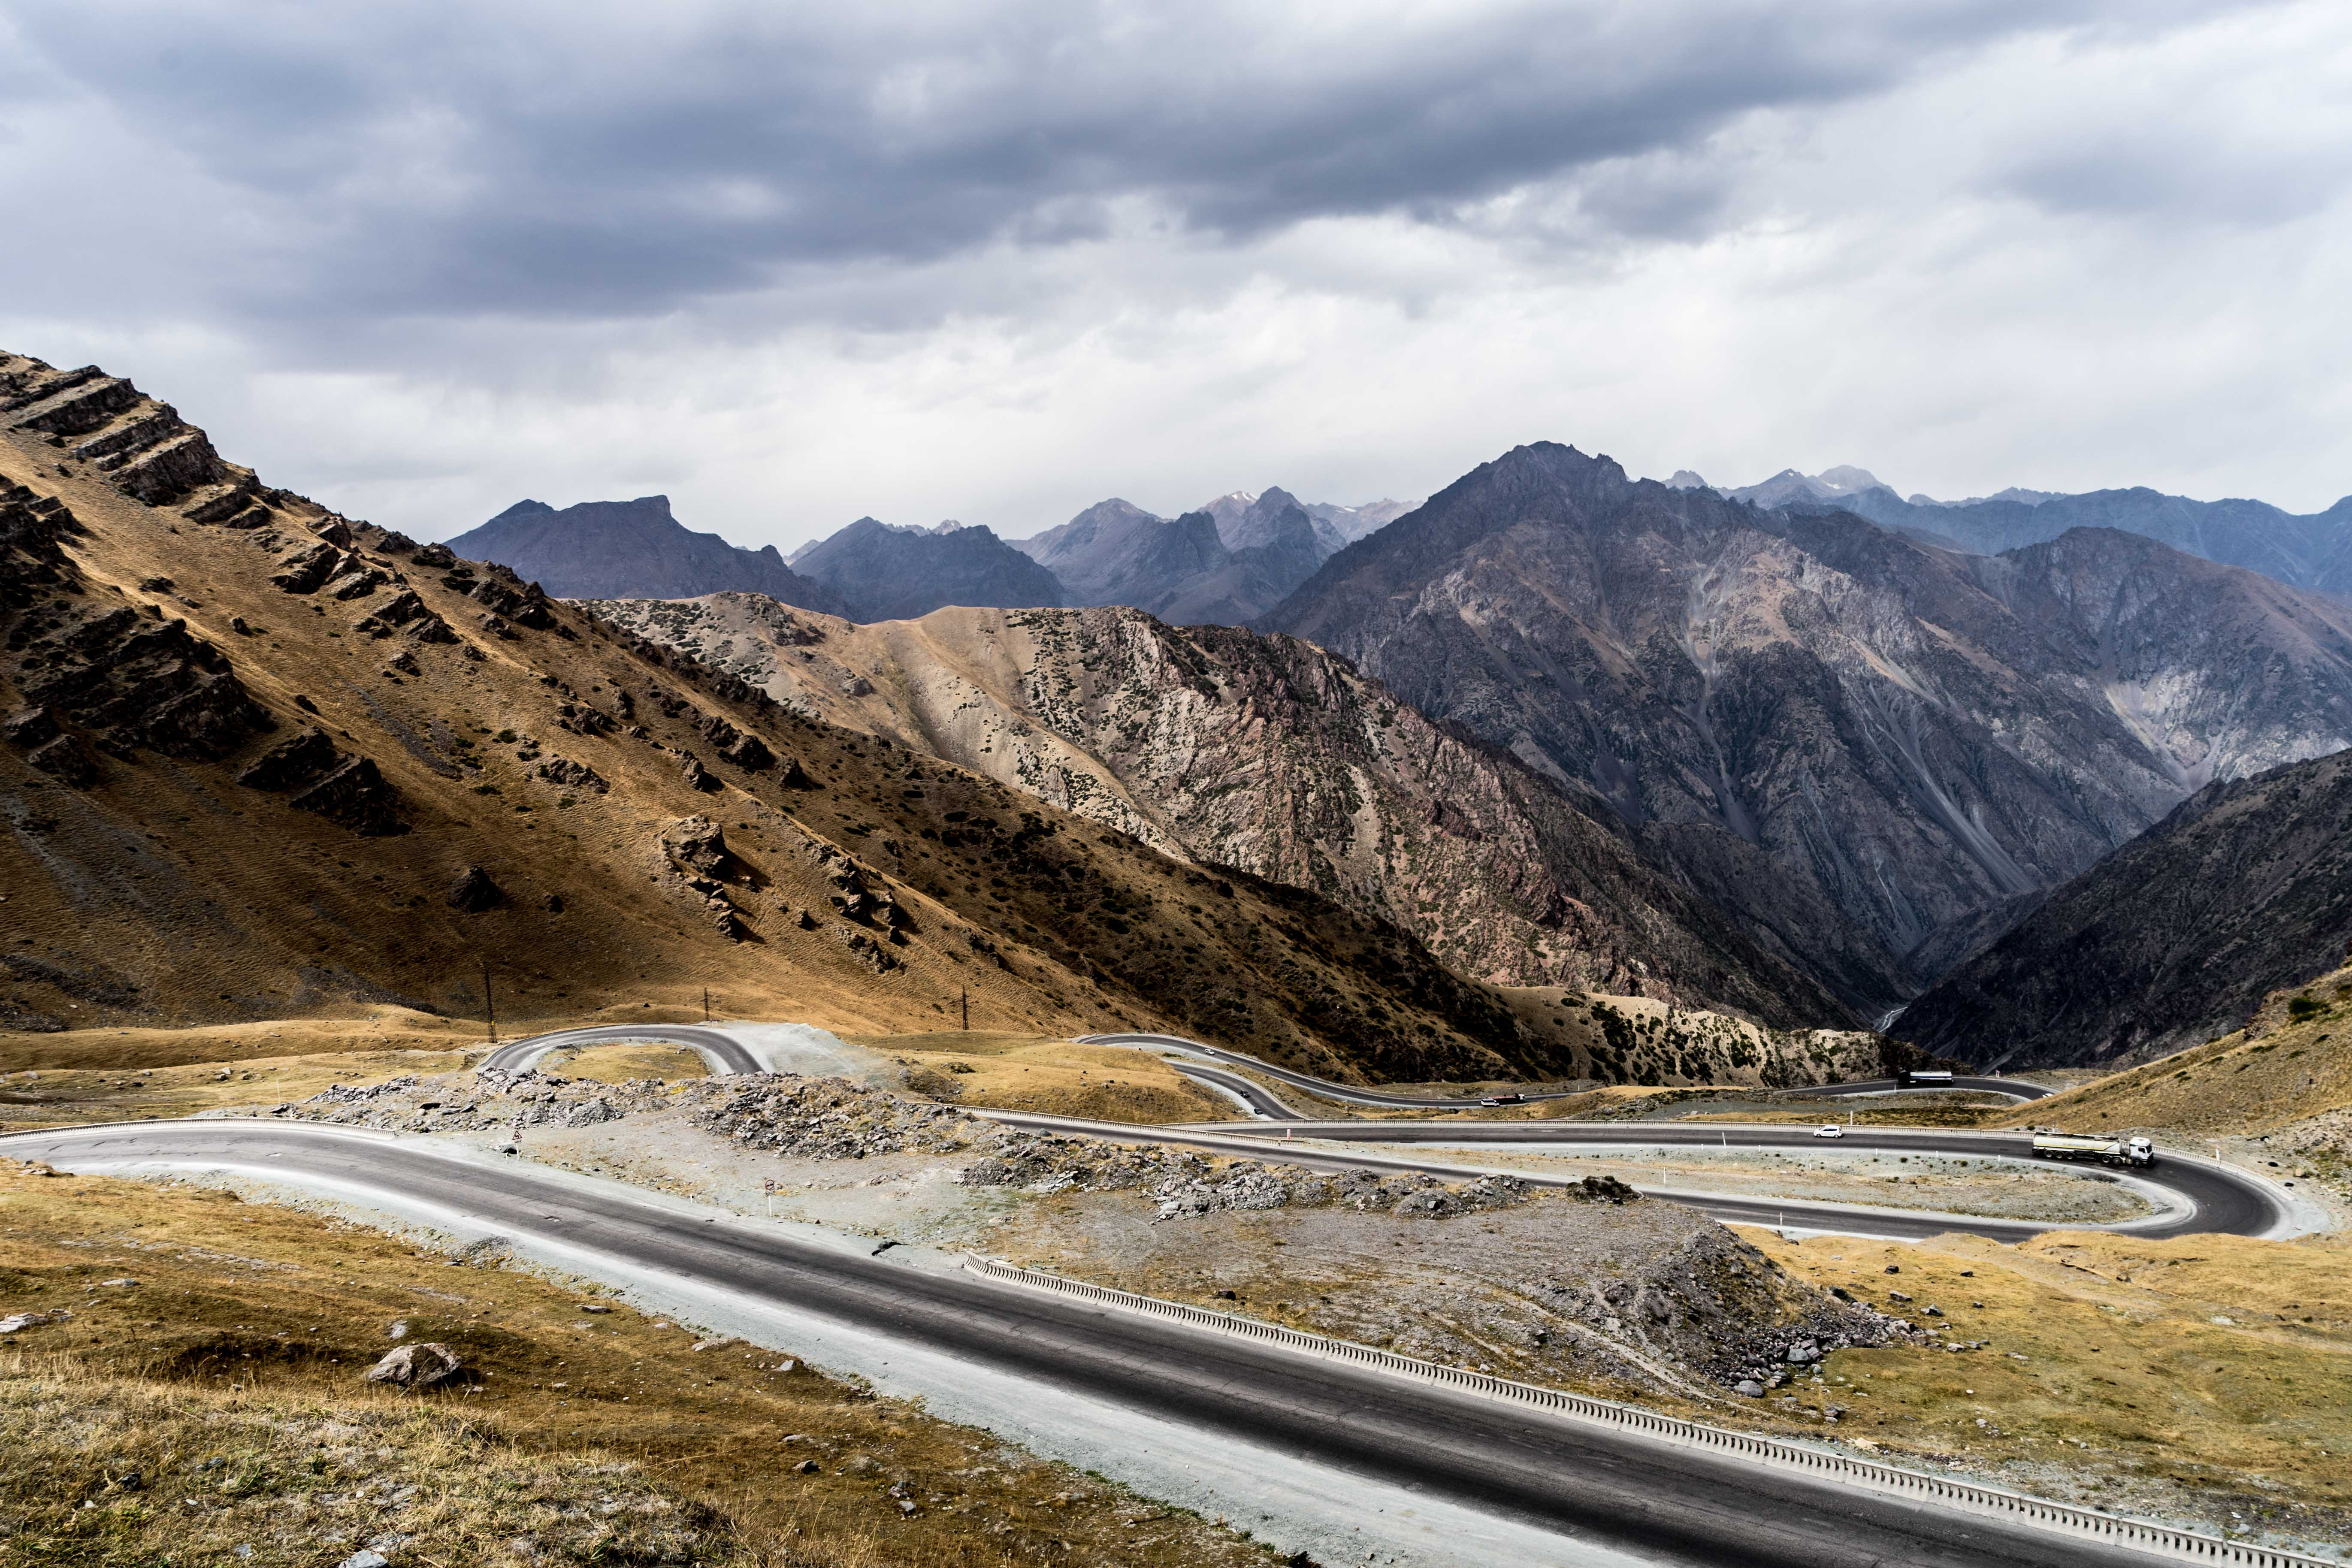 Kyrgyzstan: The hilly Stan